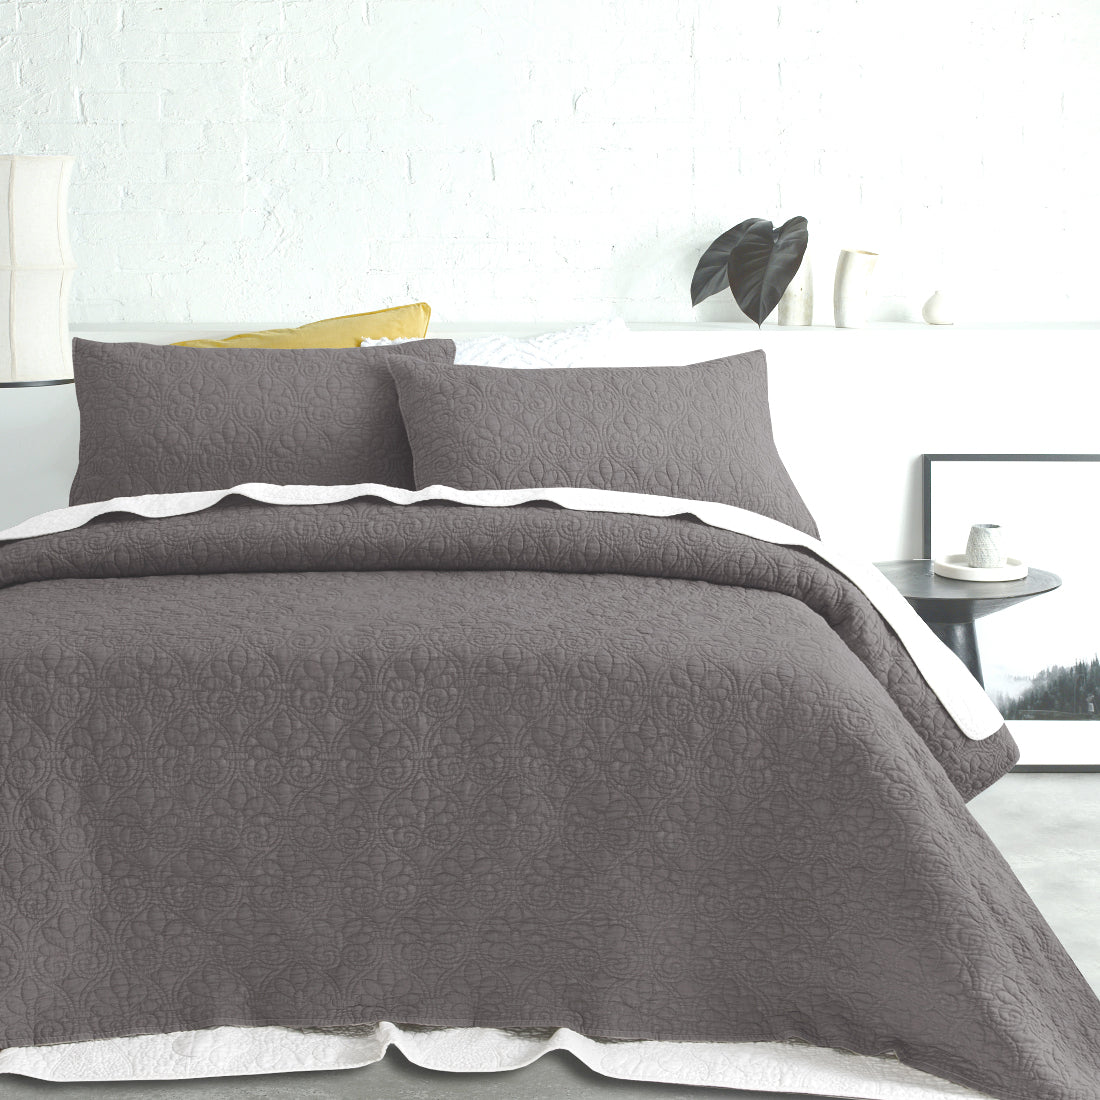 Stone-Washed Coverlet Set - Grey